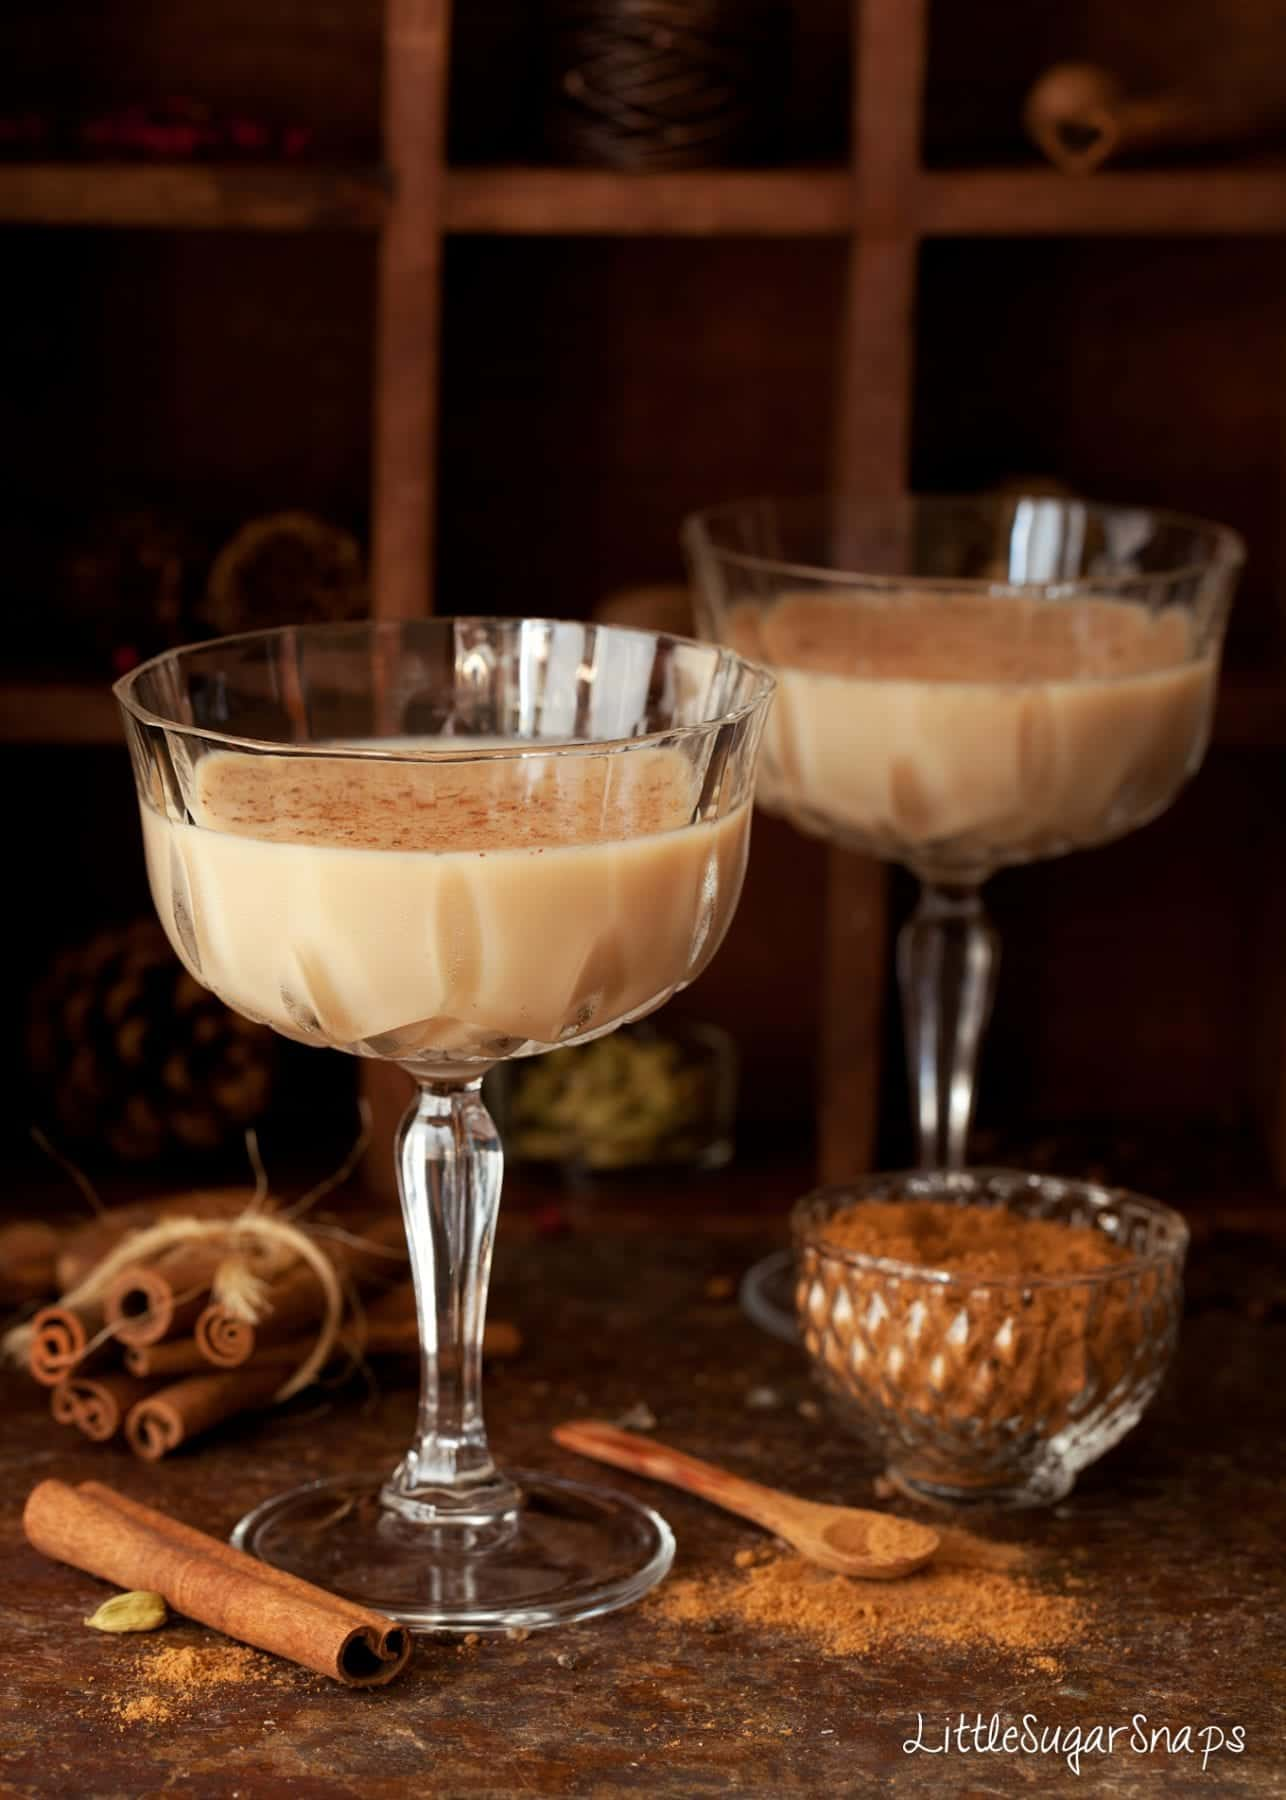 Glasses of Spiced Chai Latte Martini topped with ground spice